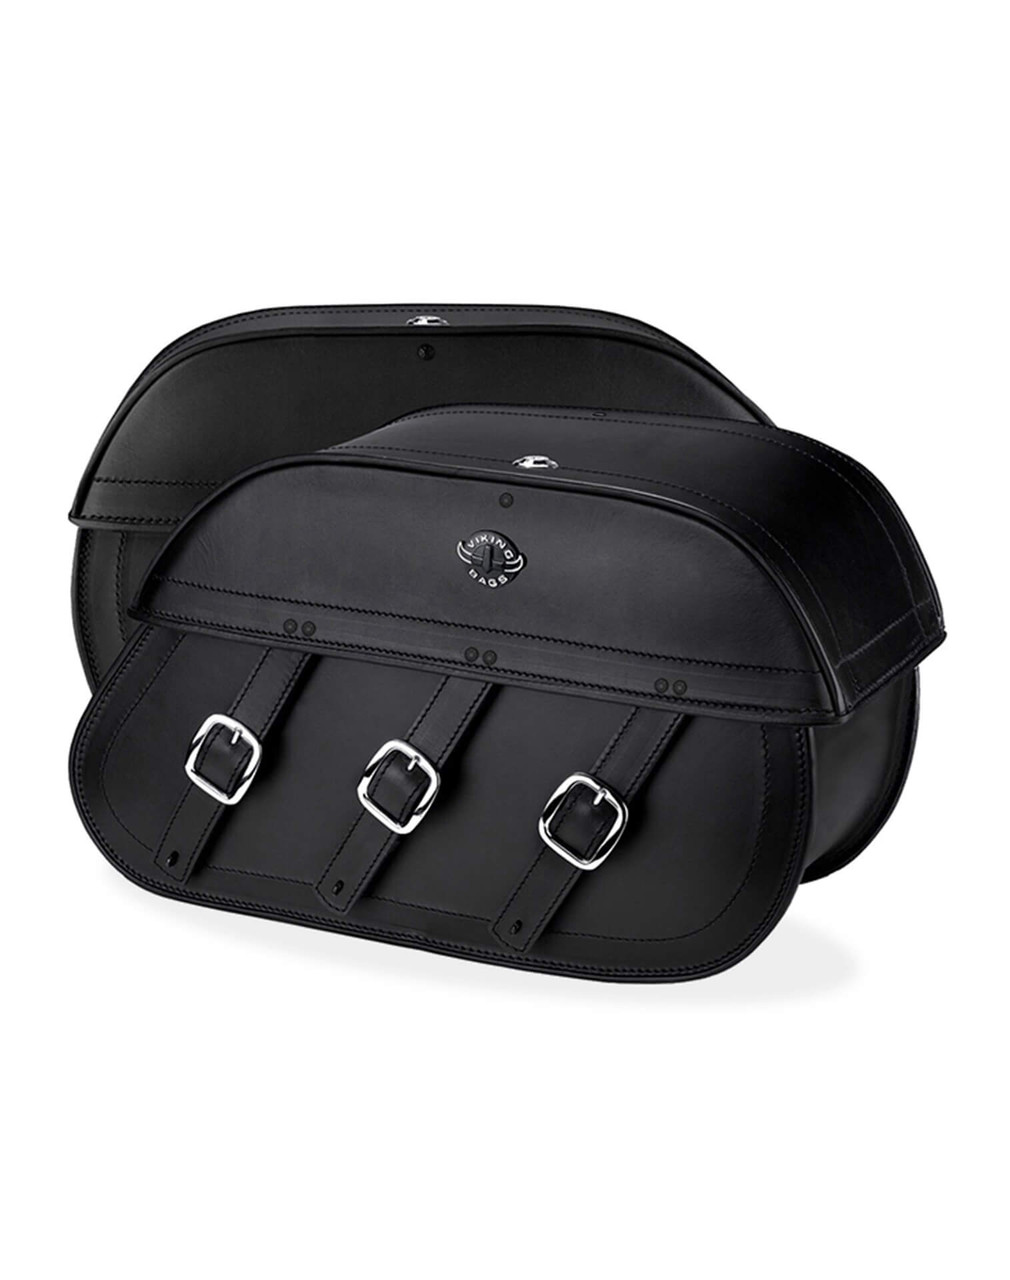 Victory Judge Trianon Motorcycle Saddlebags Both Bags View